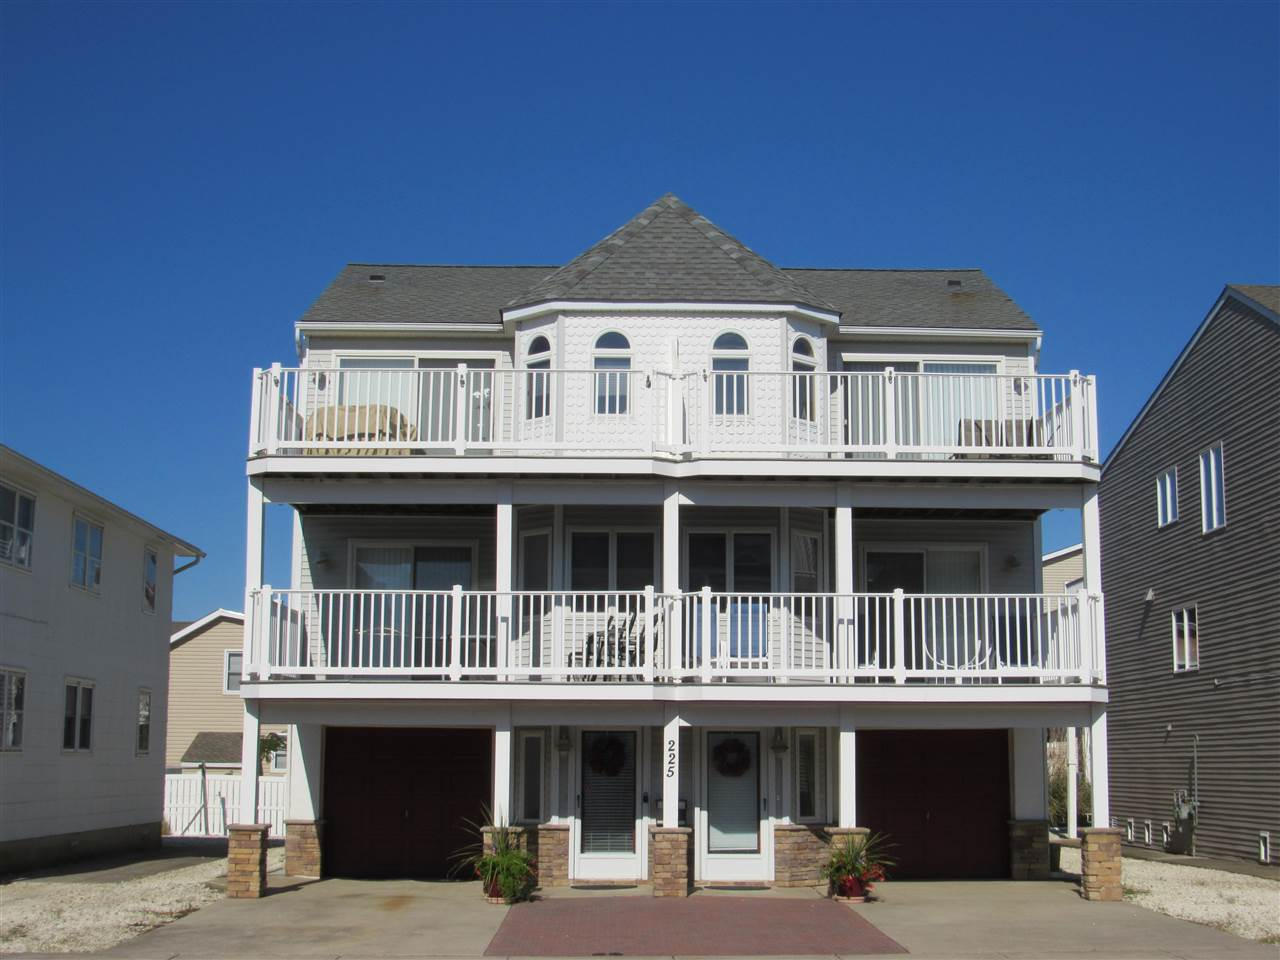 225 77th street East, Sea Isle City